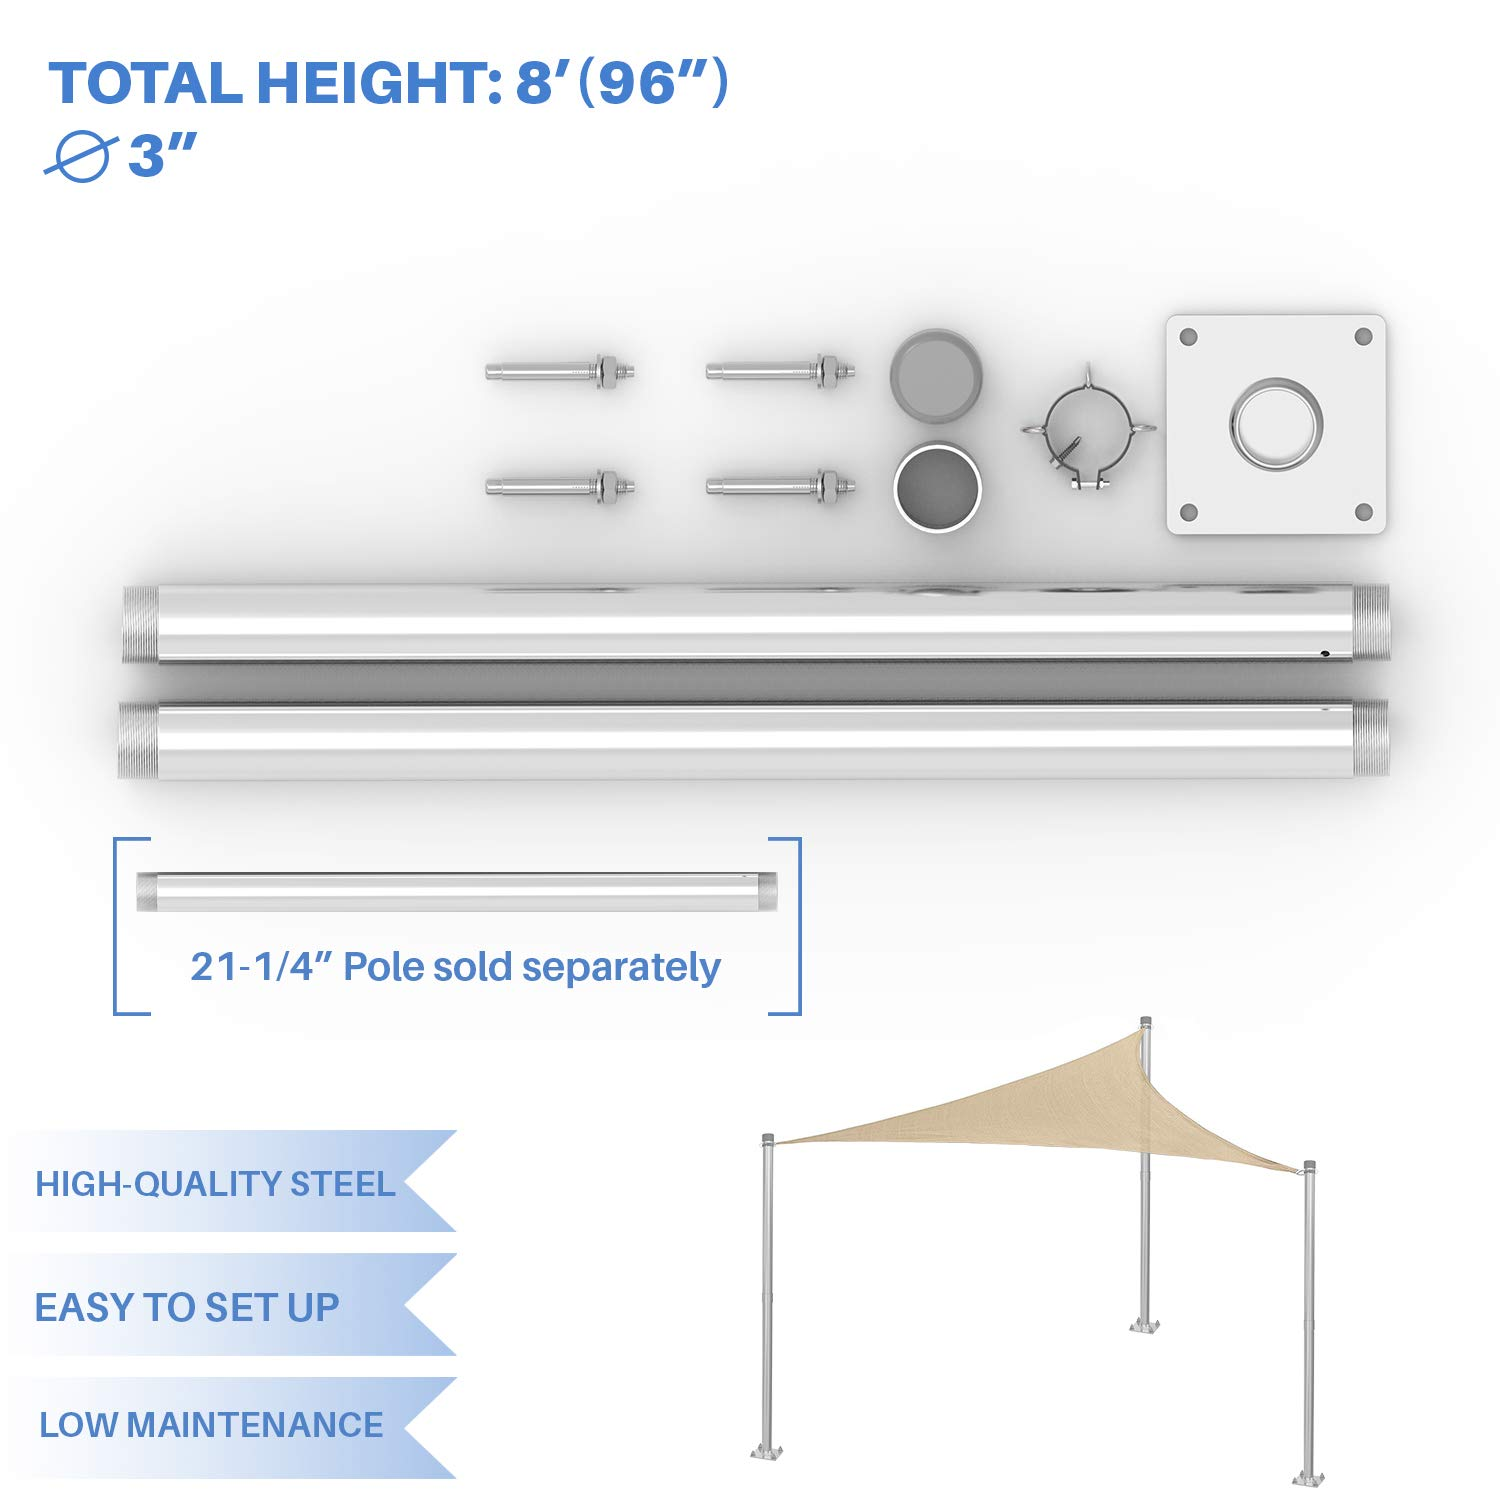 E&K Sunrise Sun Shade Sail Pole Stand Post Heavy Duty Awning Canopy Support Poles Fence Post Galvanized Steel Metal Pole 8' Feet Tall (96'')